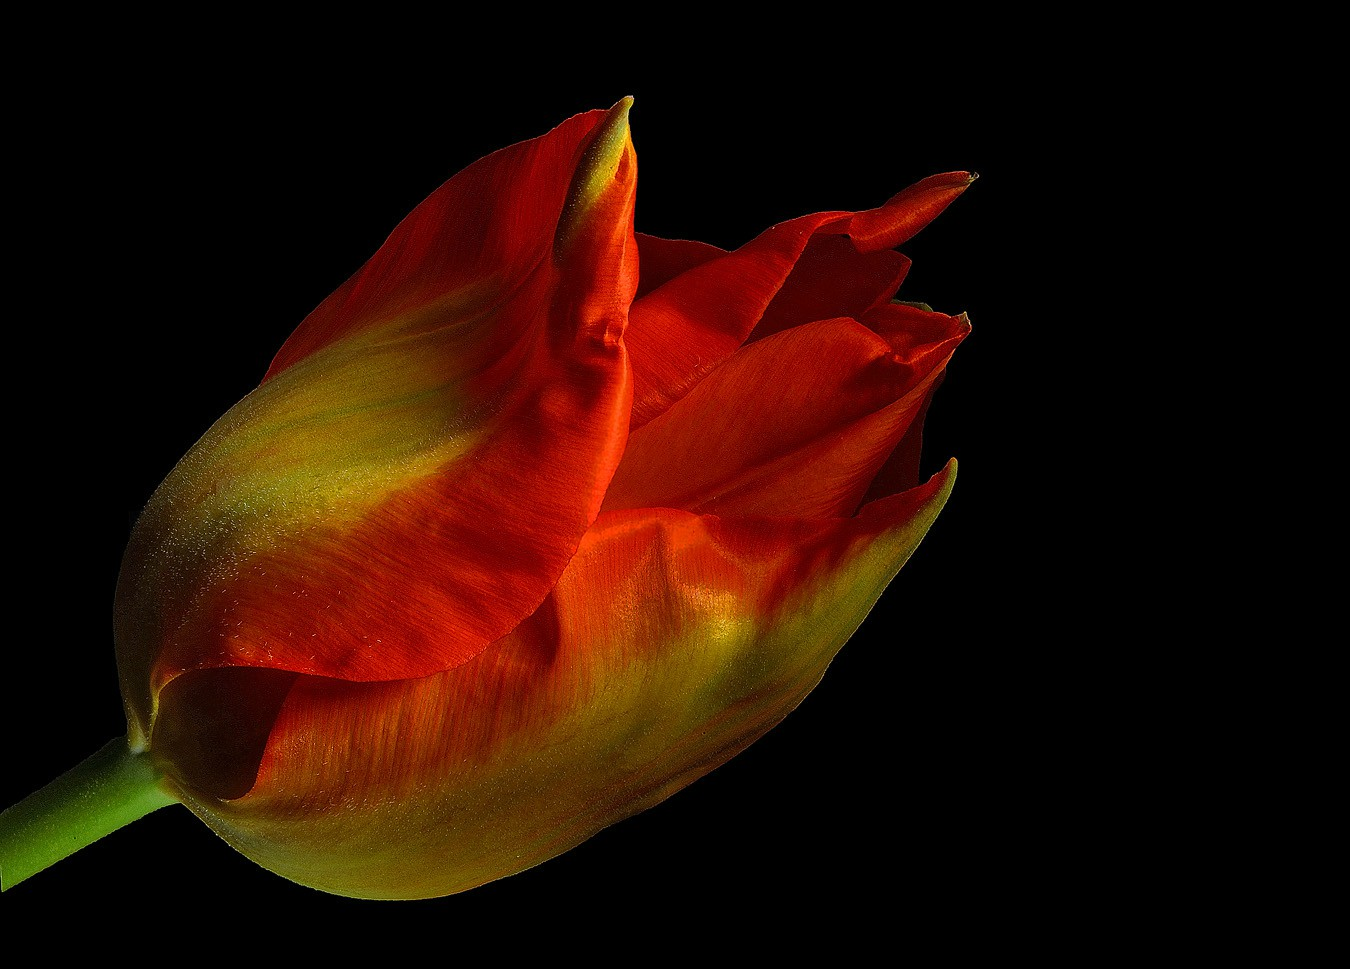 lil tulip side img aw author sava gregory and ver verena